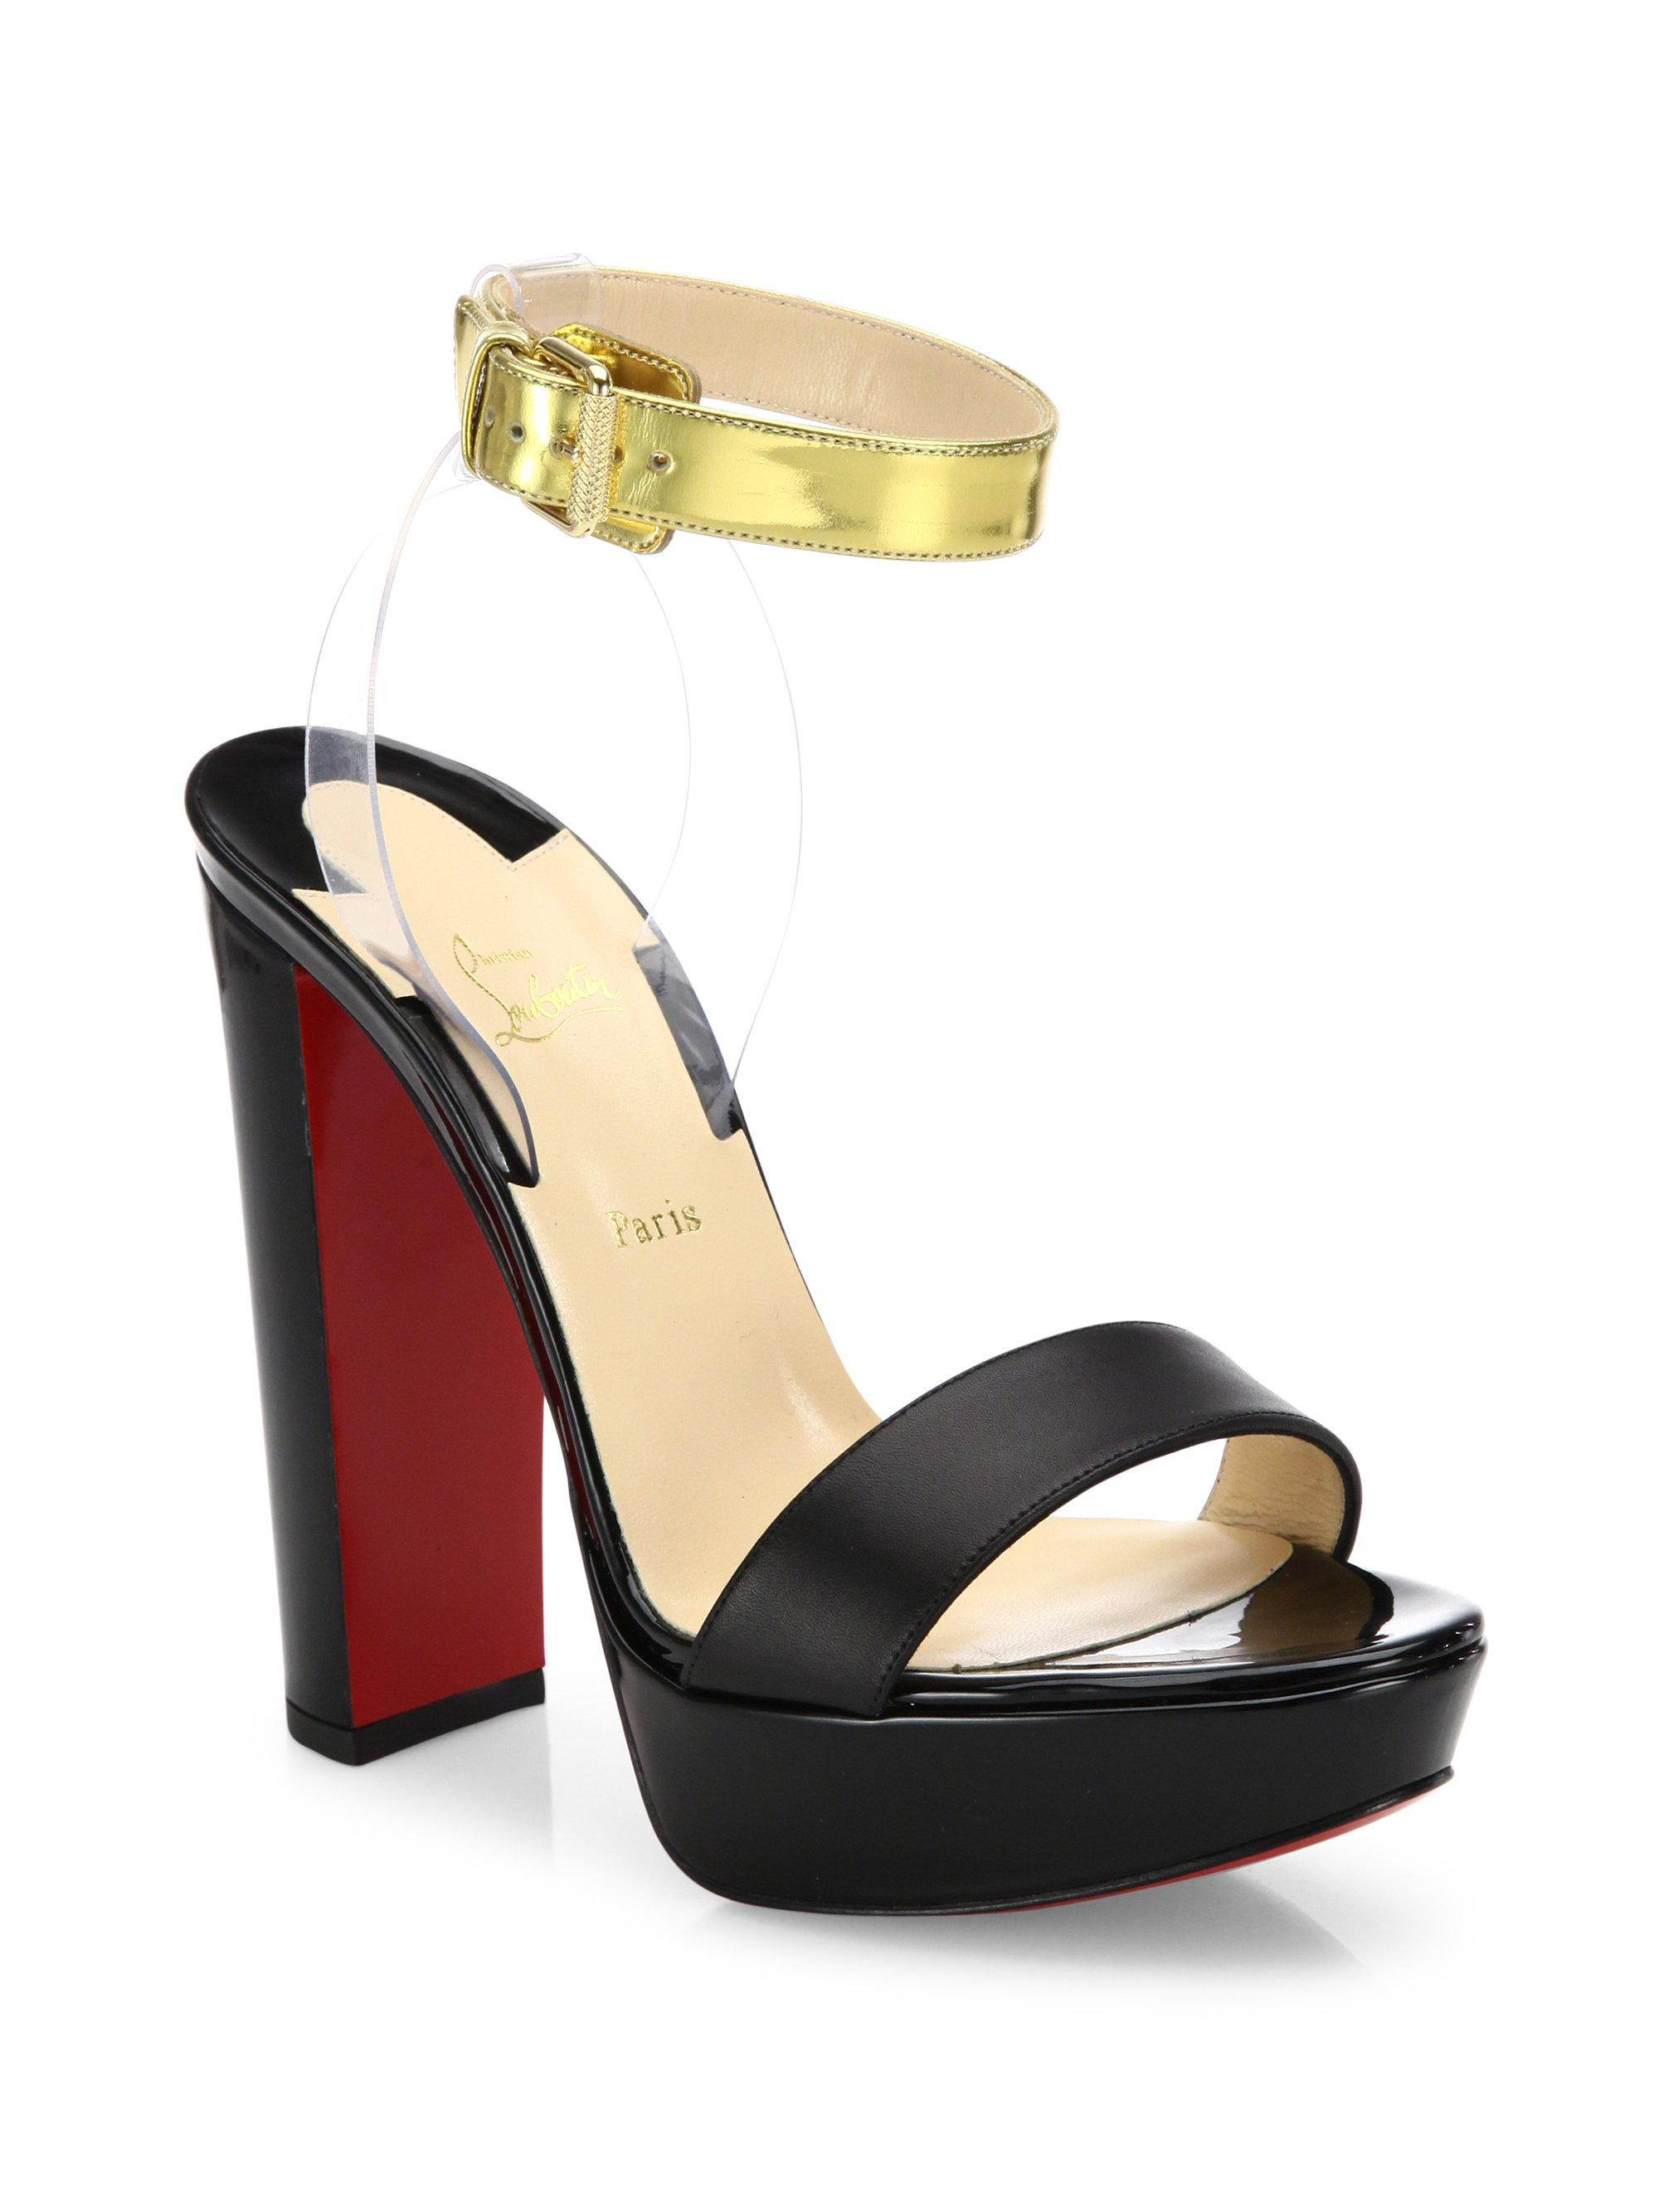 brand new b94ae d38d9 Christian Louboutin Black Cherry Patent Leather & Pvc Ankle-strap Sandals